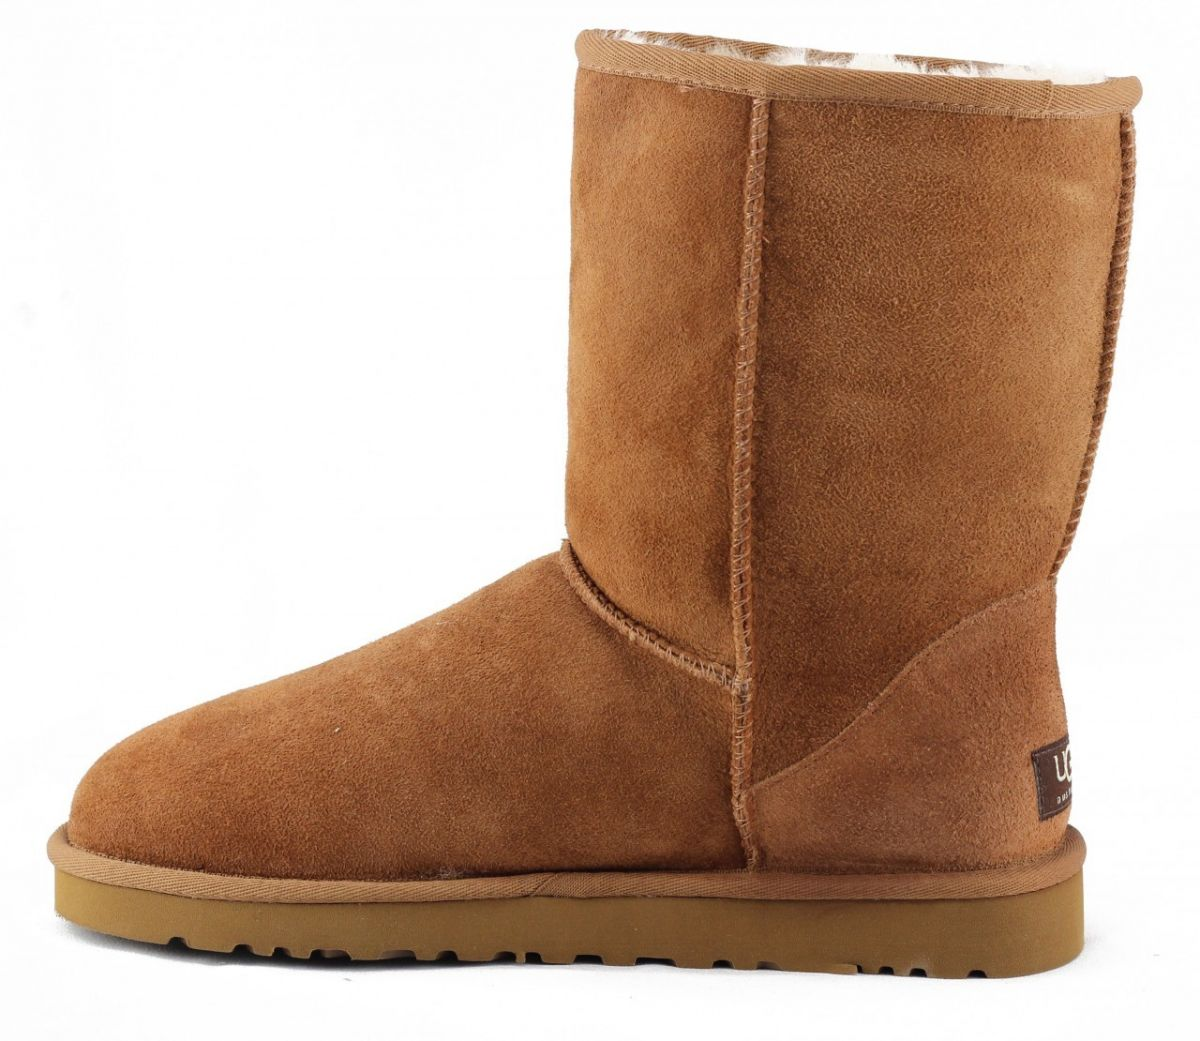 UGG Australia for Women  Classic Short Chestnut Boots Chestnut.  155.00.  Out of stock f2715096e